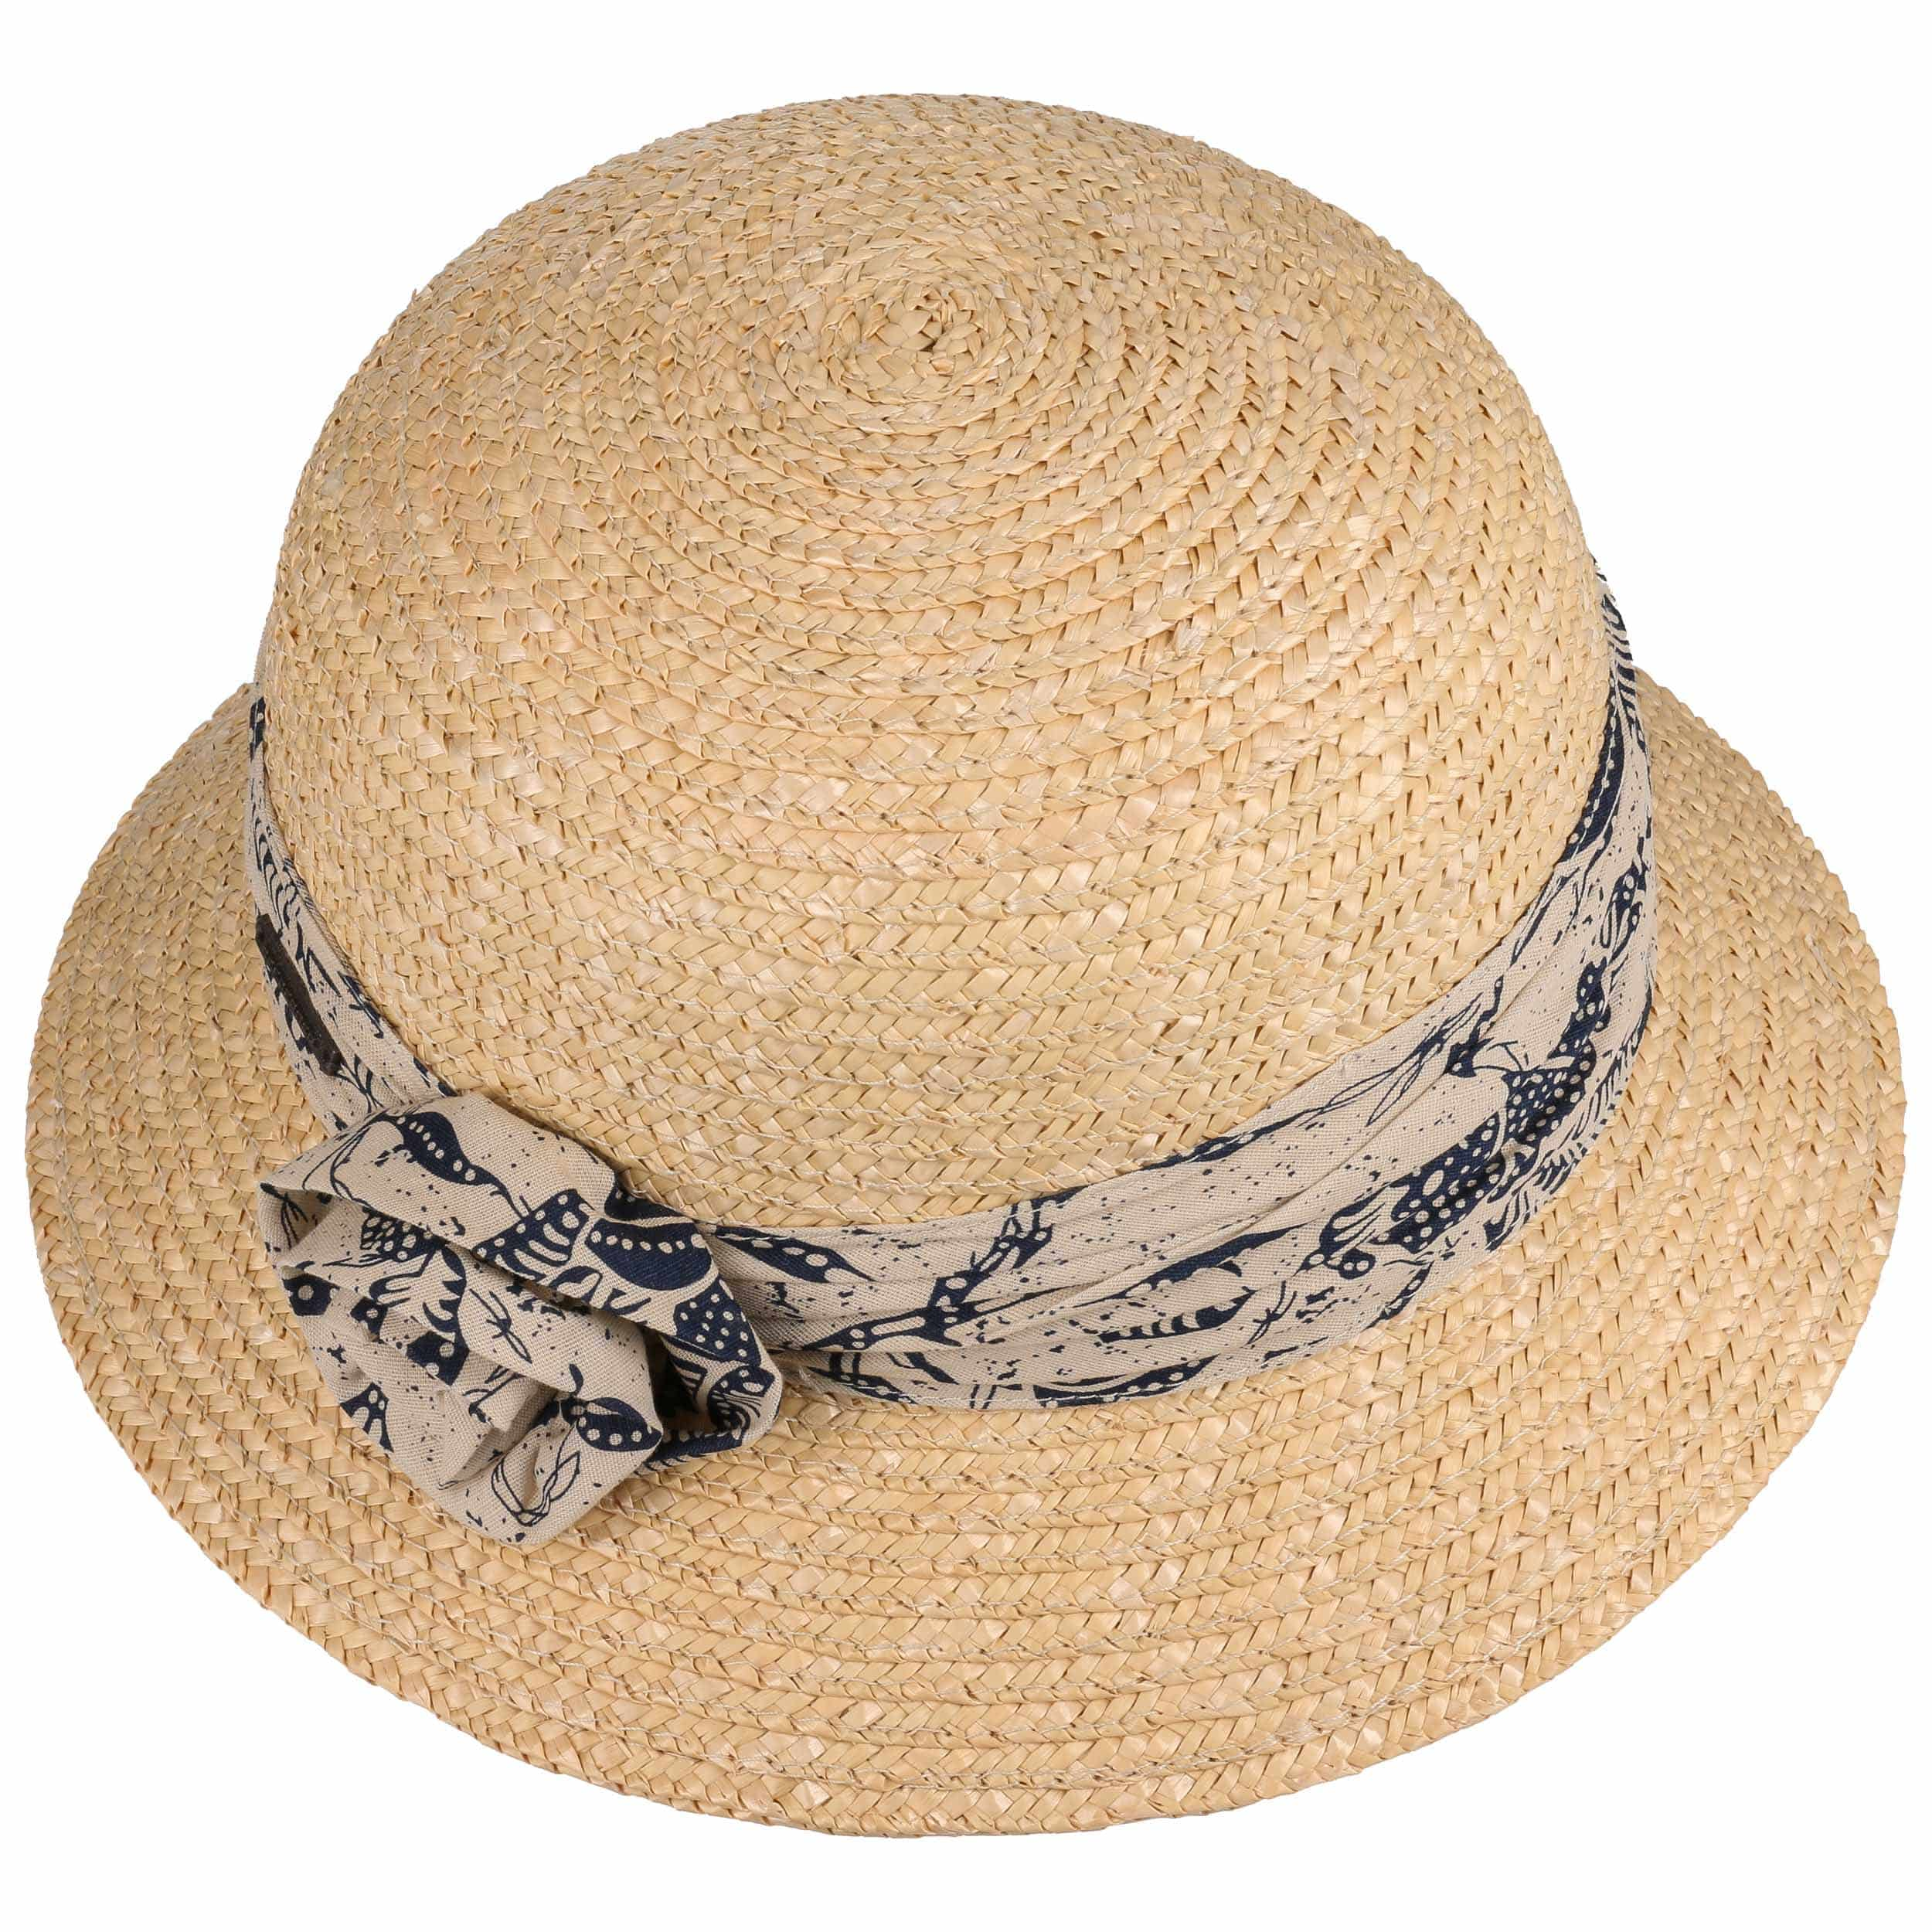 ... Sombrero Cloché Flower Trim by Seeberger - natural-azul oscuro 1 ... b34d159f501